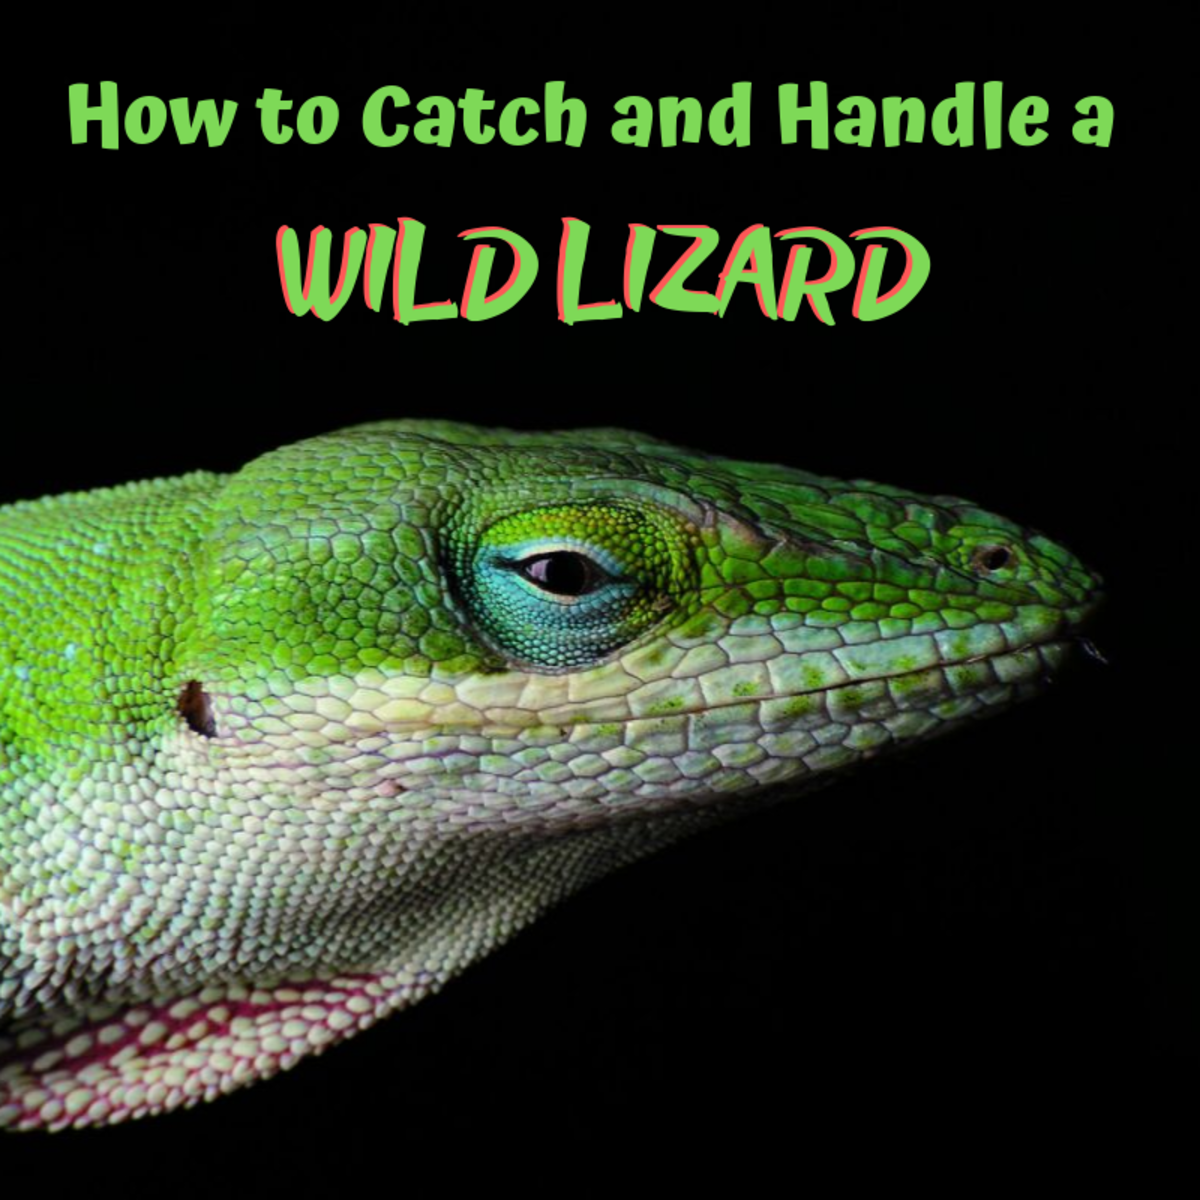 How to Safely Catch and Hold a Wild Lizard